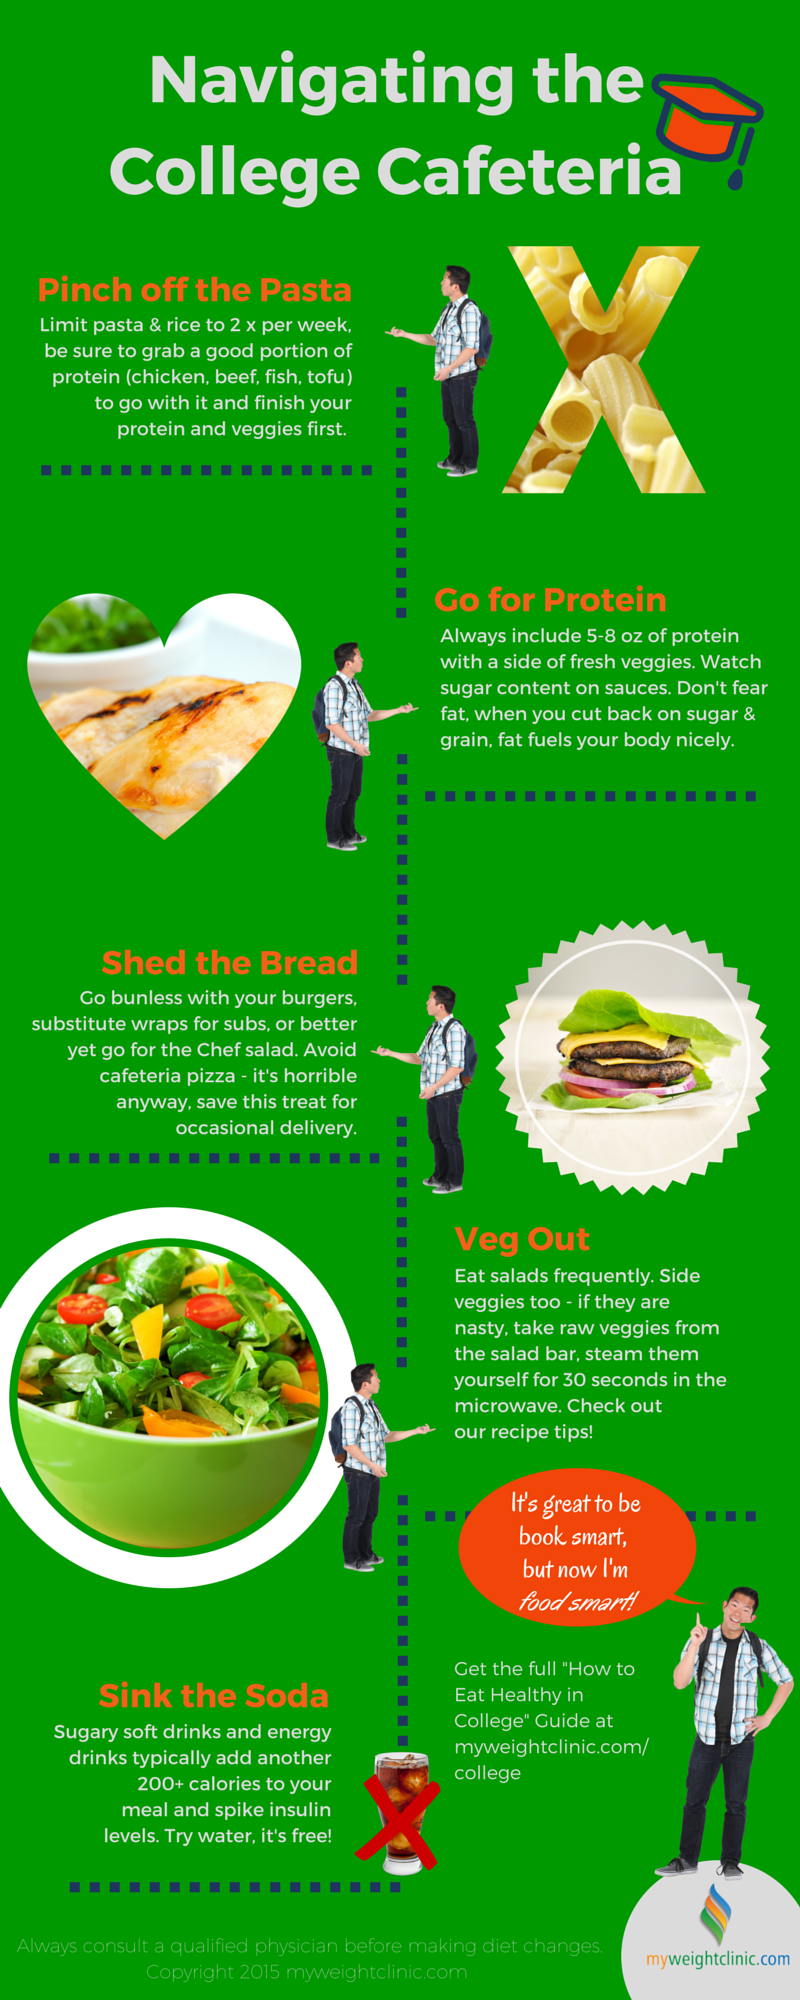 How To Eat Healthy In College 33 Tips PDF Navigating The Cafeteria Infog